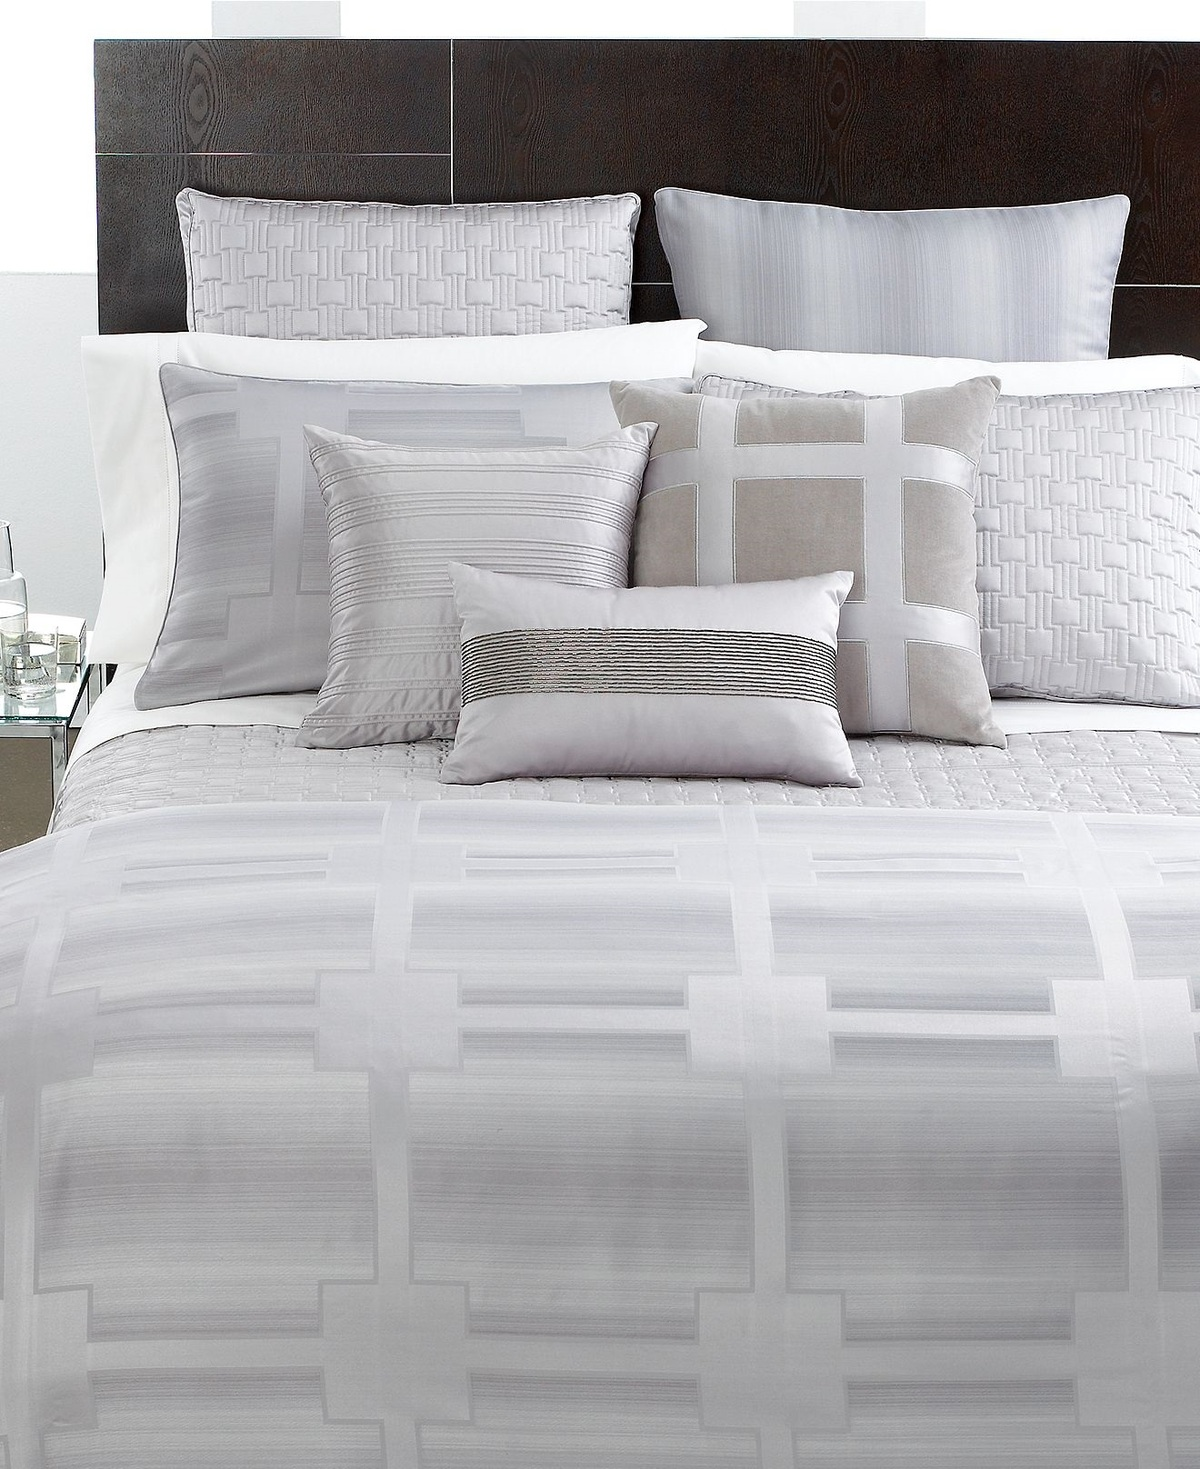 HOTEL COLLECTION MERIDIAN FULL  QUEEN Duvet Cover  STANDARD Shams Set